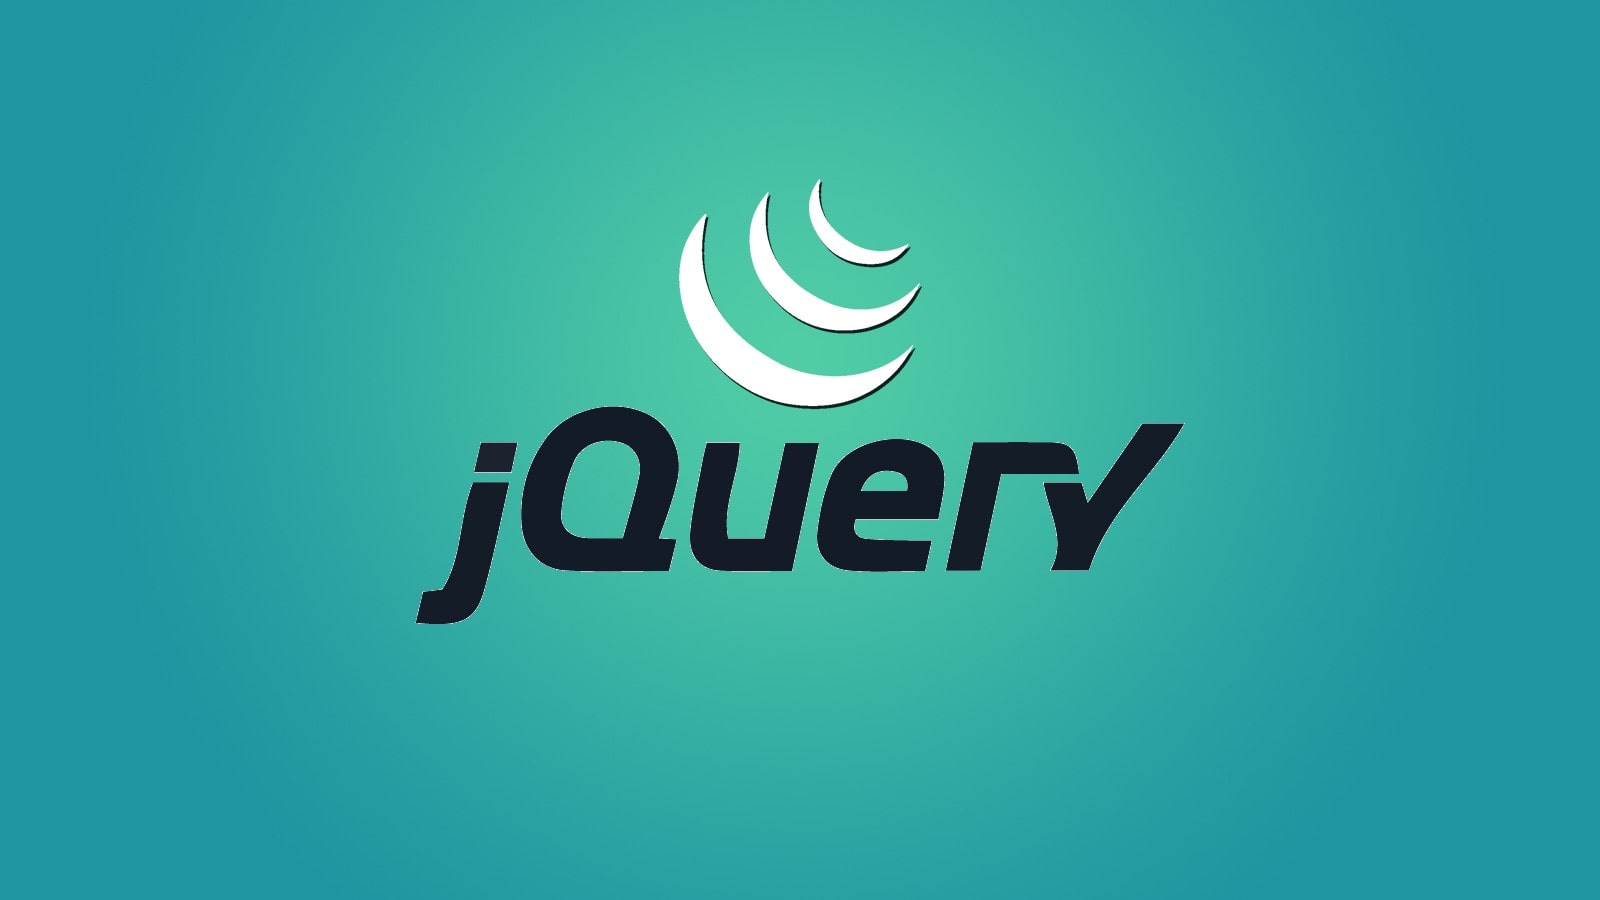 Add or Remove class in jQuery on button click